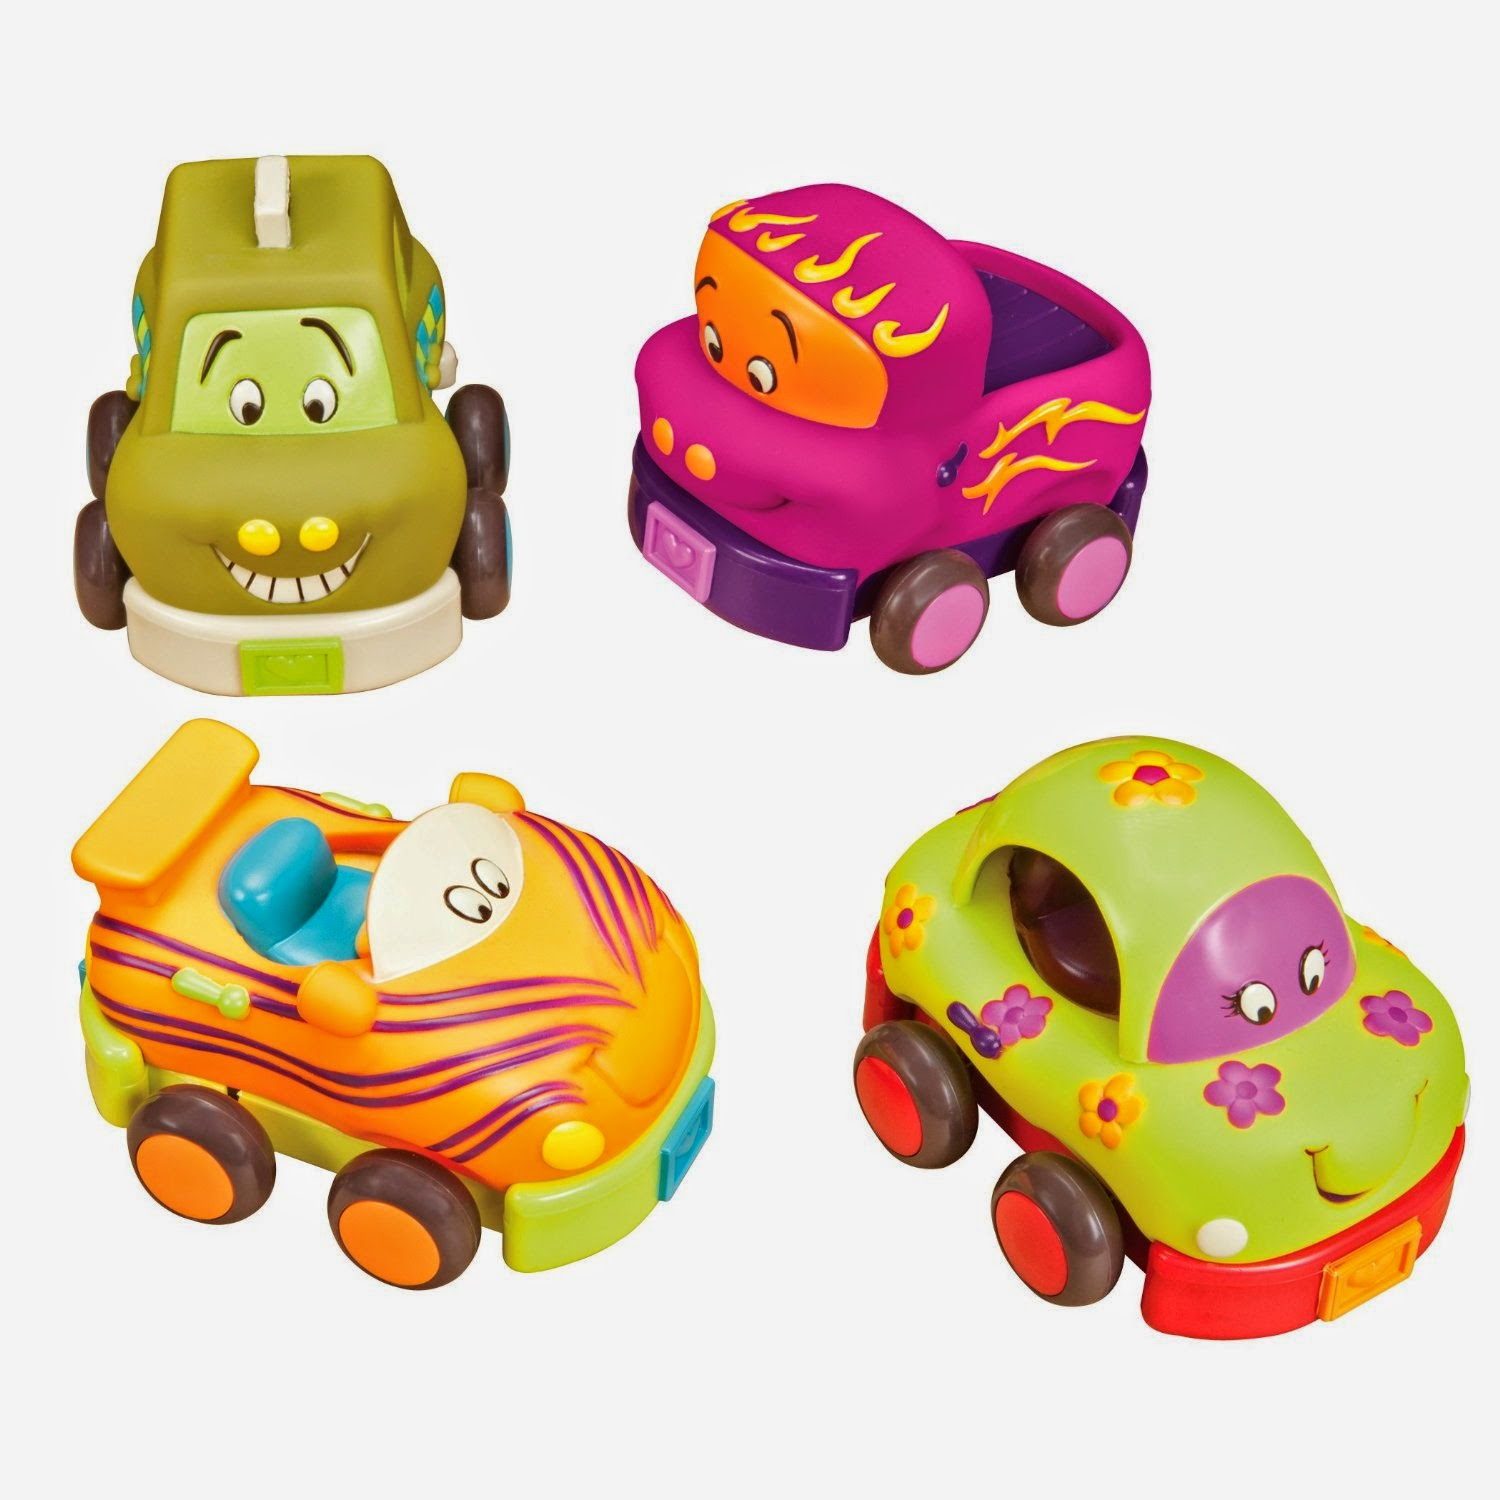 Toddler Toys Cars : Toddler approved ways to learn and play with toy cars